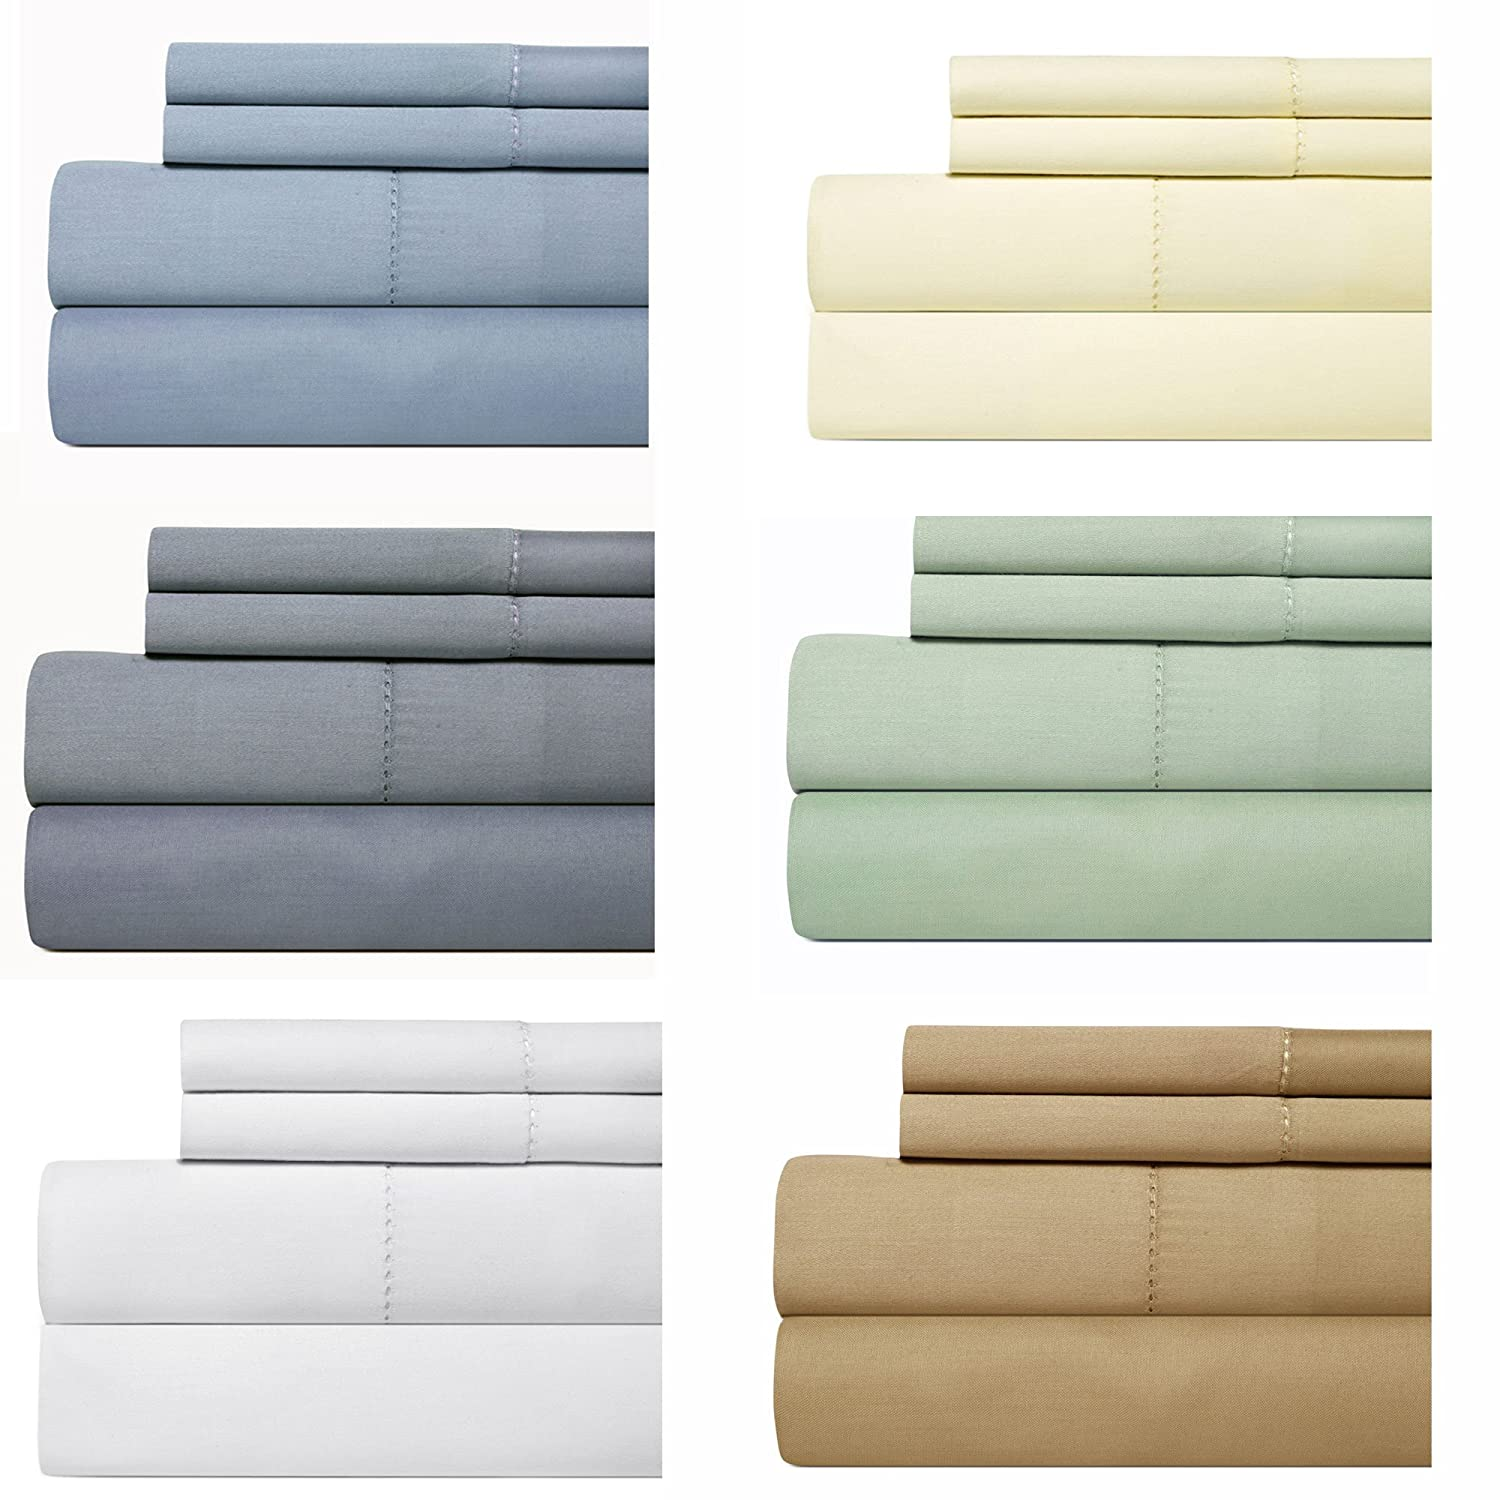 Cotton Queen Sheet Set, 4-Piece Bedding Set